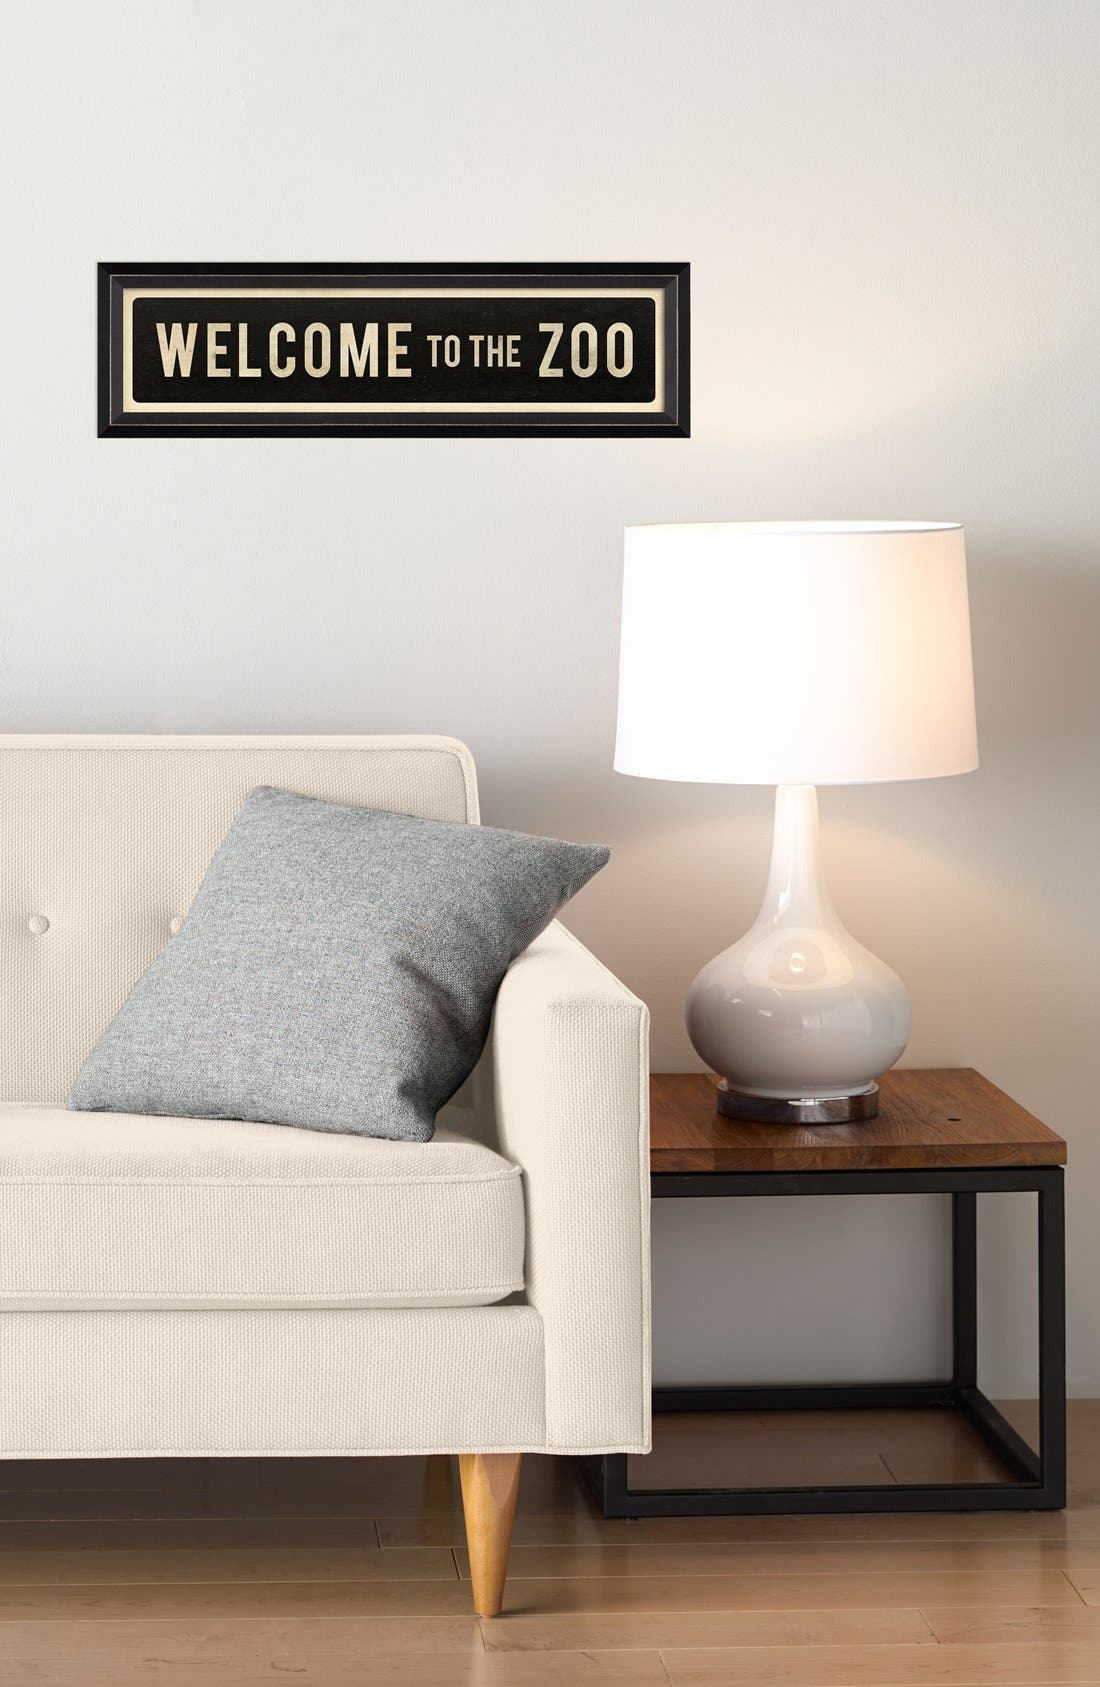 'Welcome to the Zoo' Vintage Look Street Sign Artwork,                             Alternate thumbnail 3, color,                             001